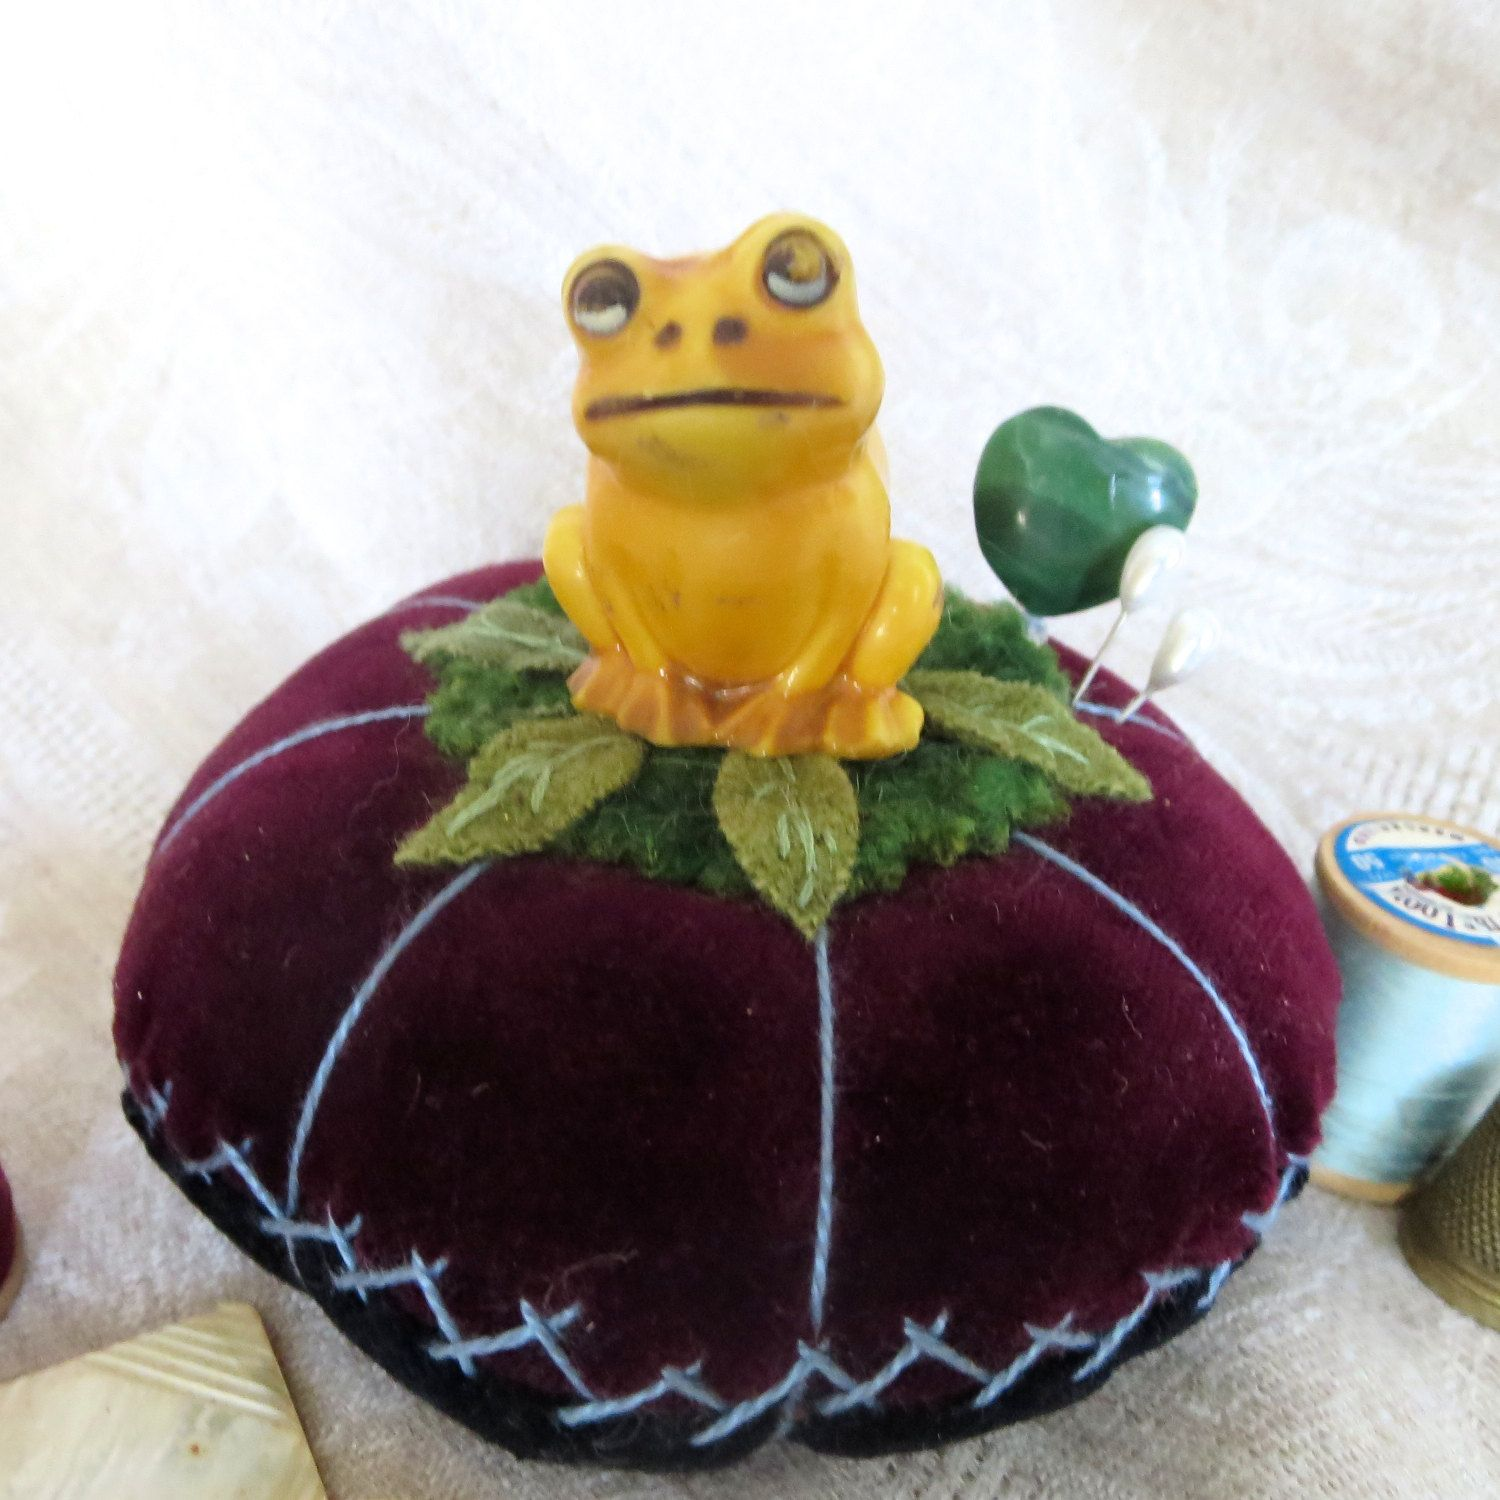 Folkart PINCUSHION with FROG Figurine on Velveteen by MagpieJane